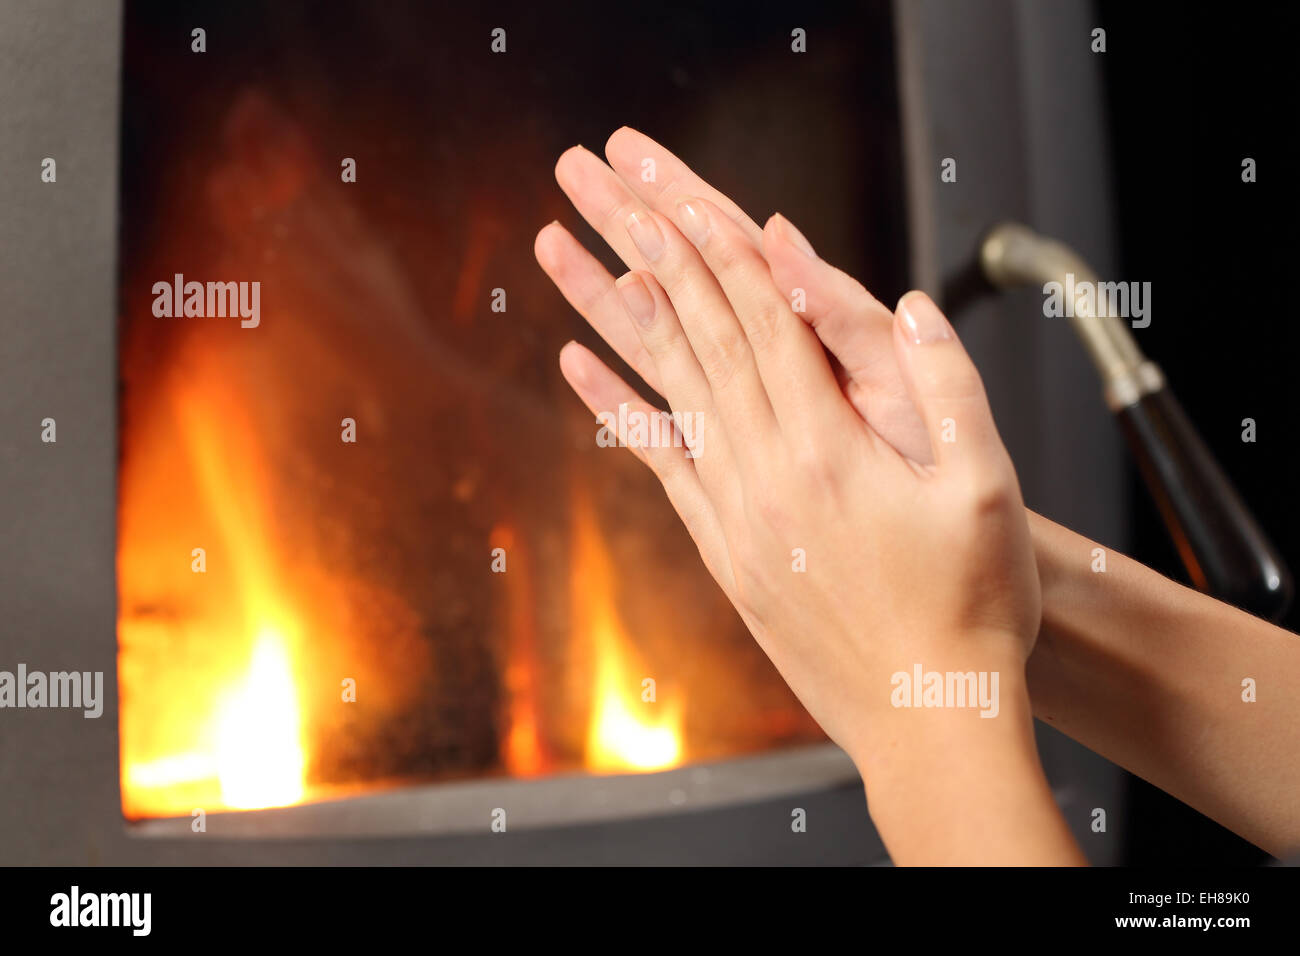 Woman rubbing hands and heating in front a fire place at home in winter - Stock Image